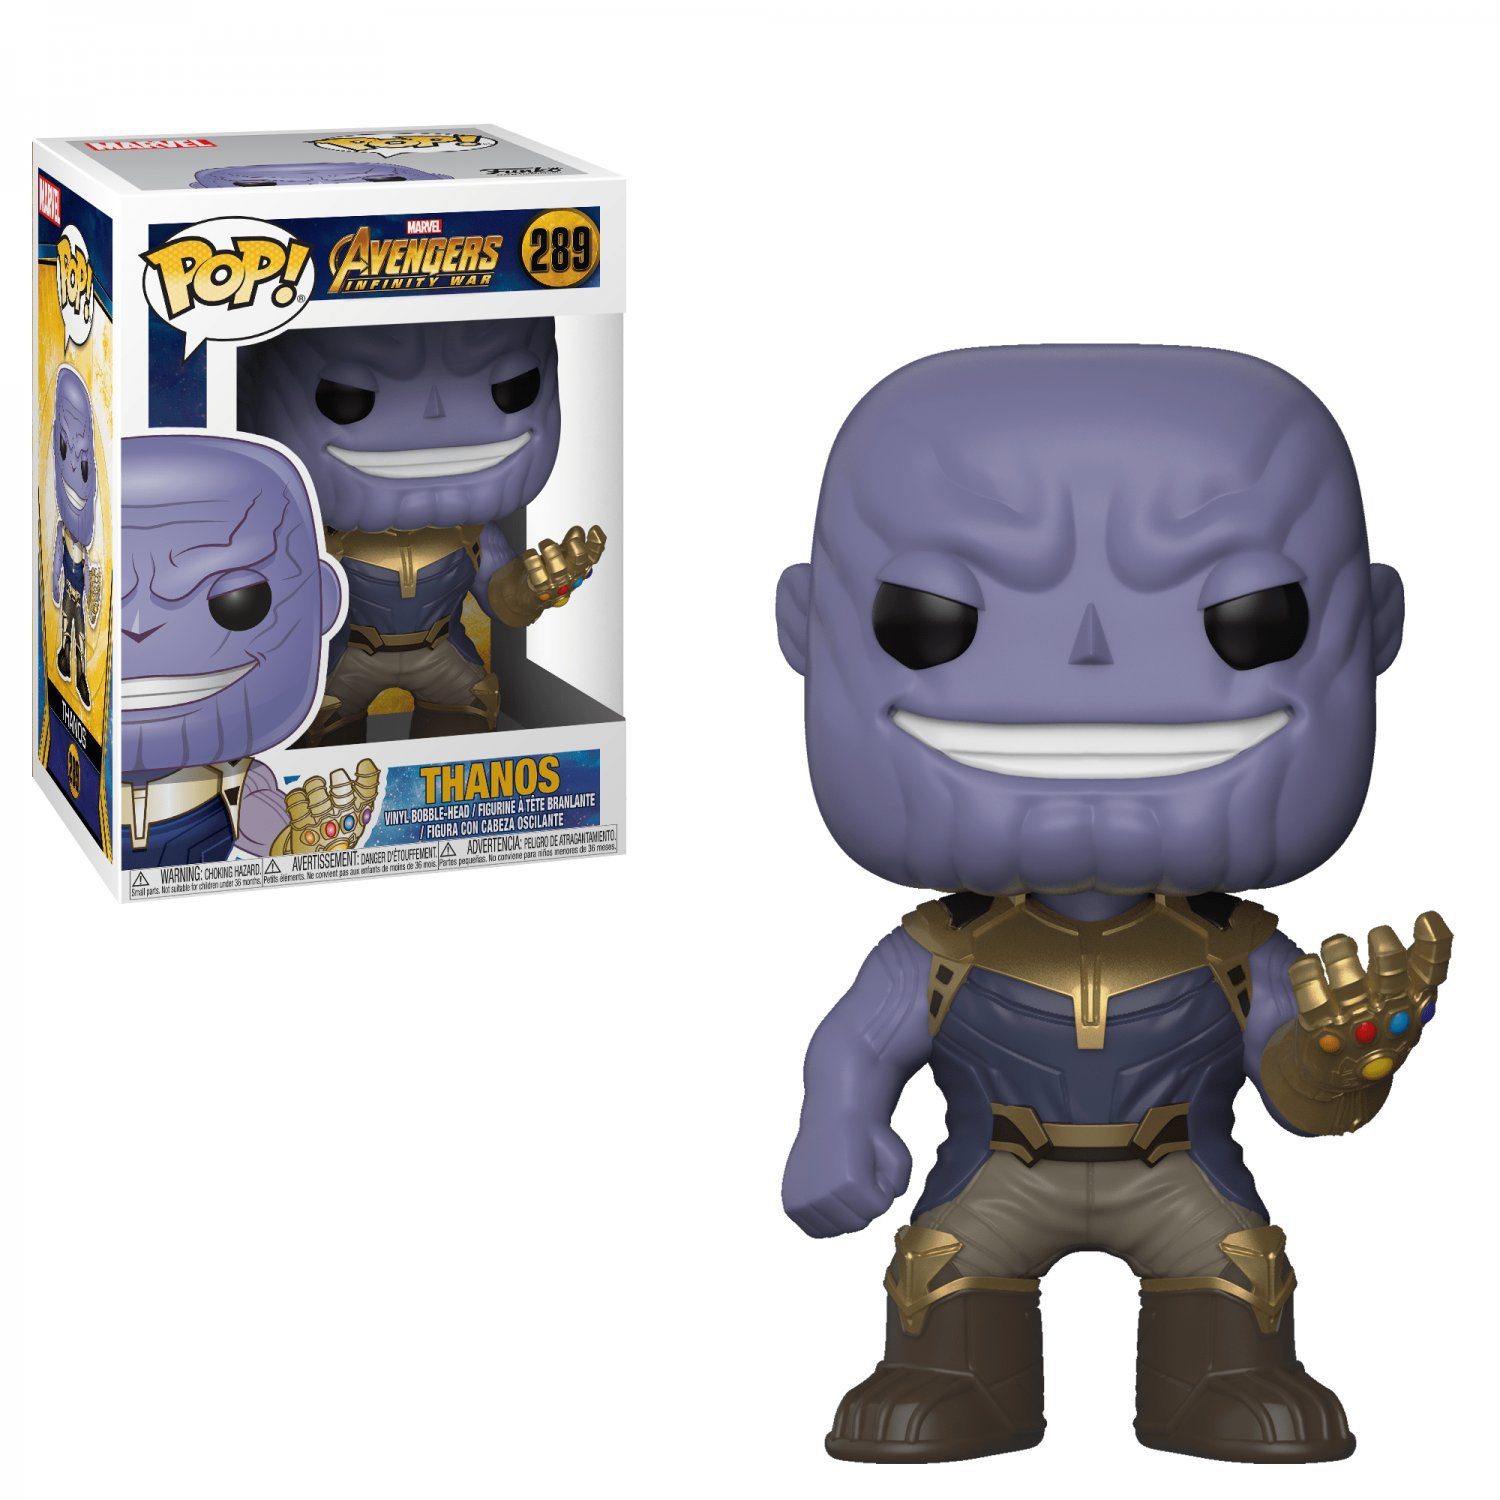 Thanos Avengers Marvel Comics �289 Funko POP! Action Figure Vinyl PVC Minifigure Toy